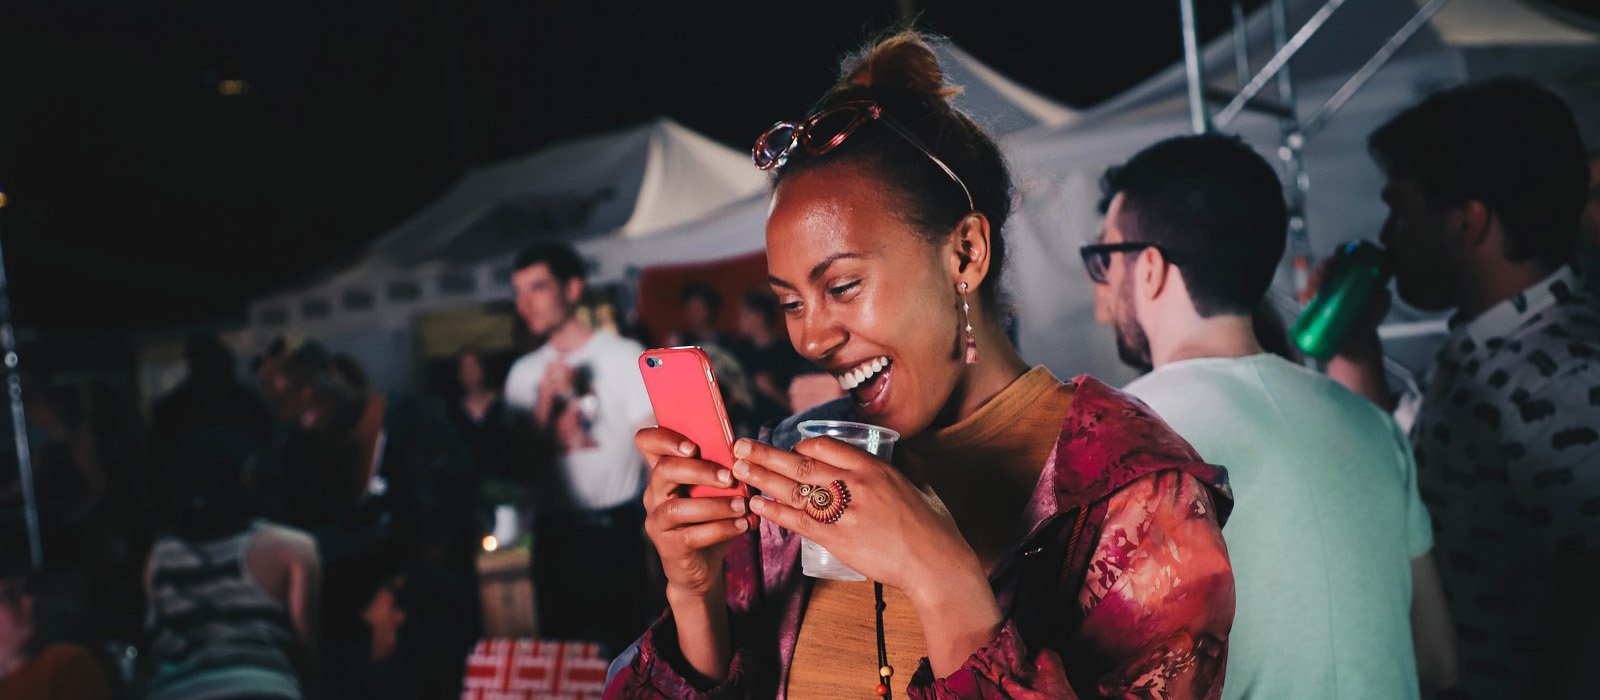 Fringe patron smiling and looking at cell phone